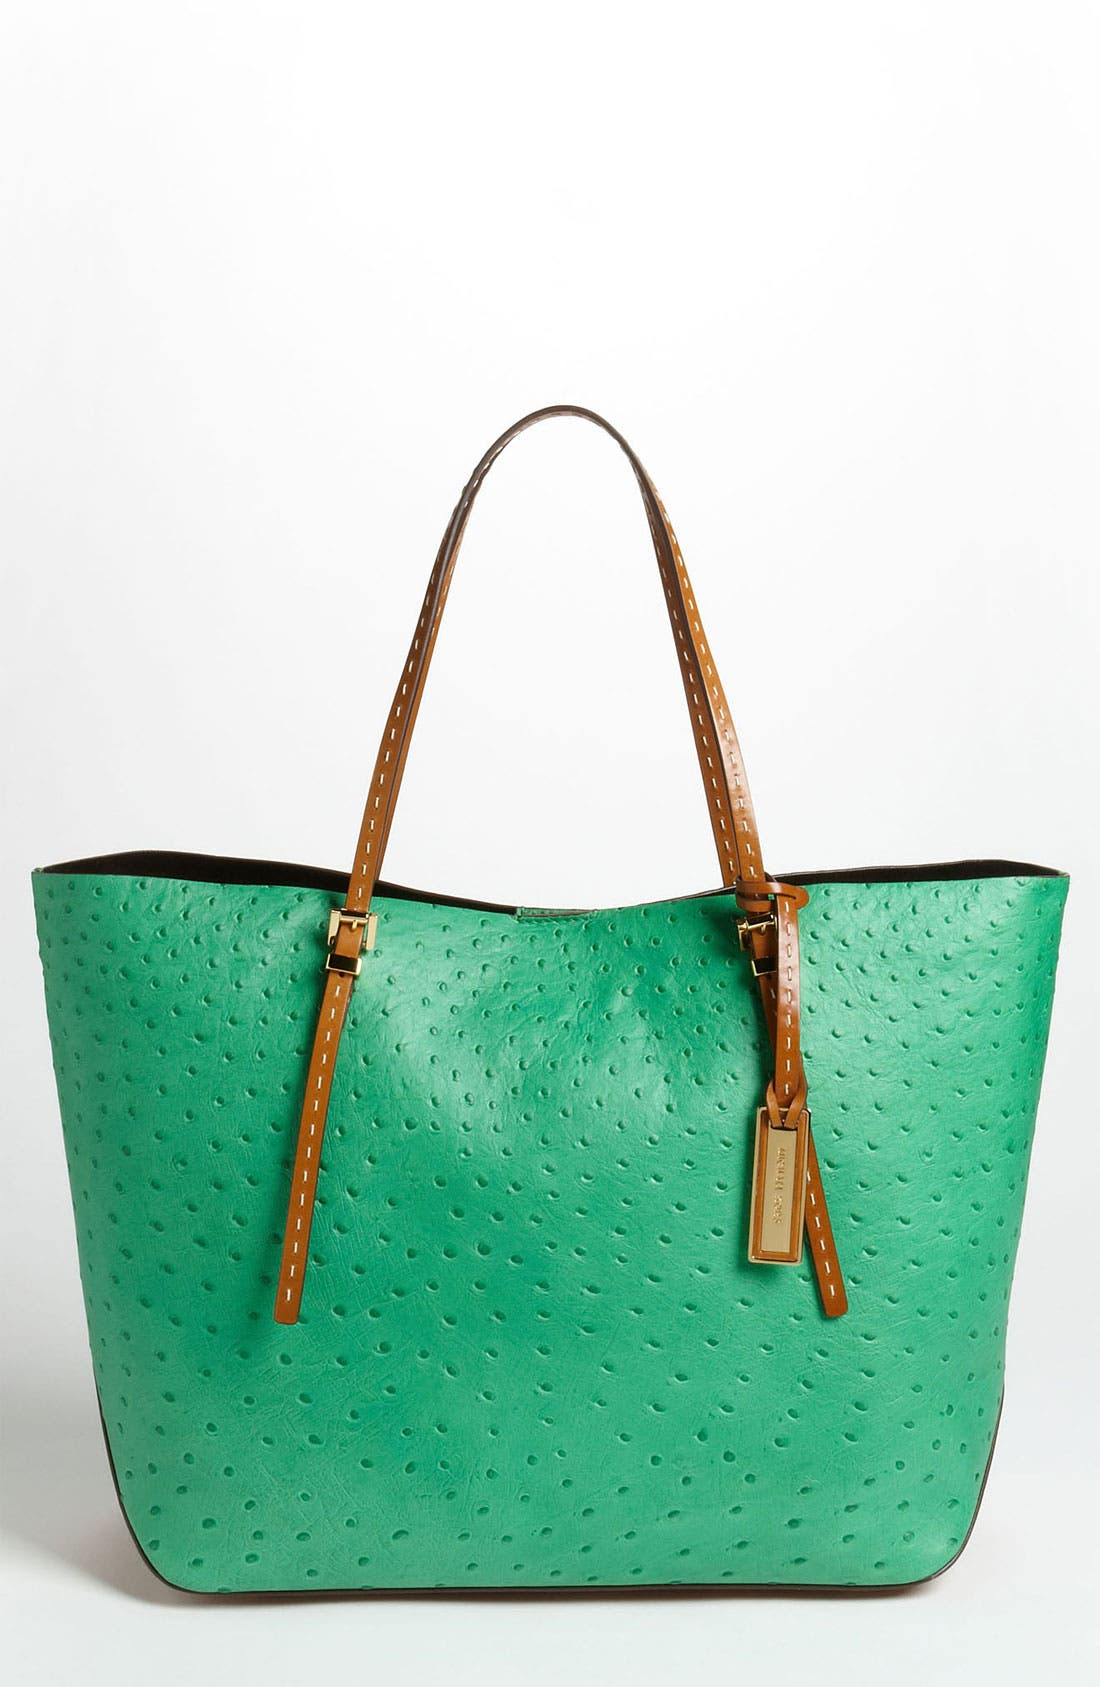 Alternate Image 1 Selected - Michael Kors 'Gia' Ostrich Embossed Tote